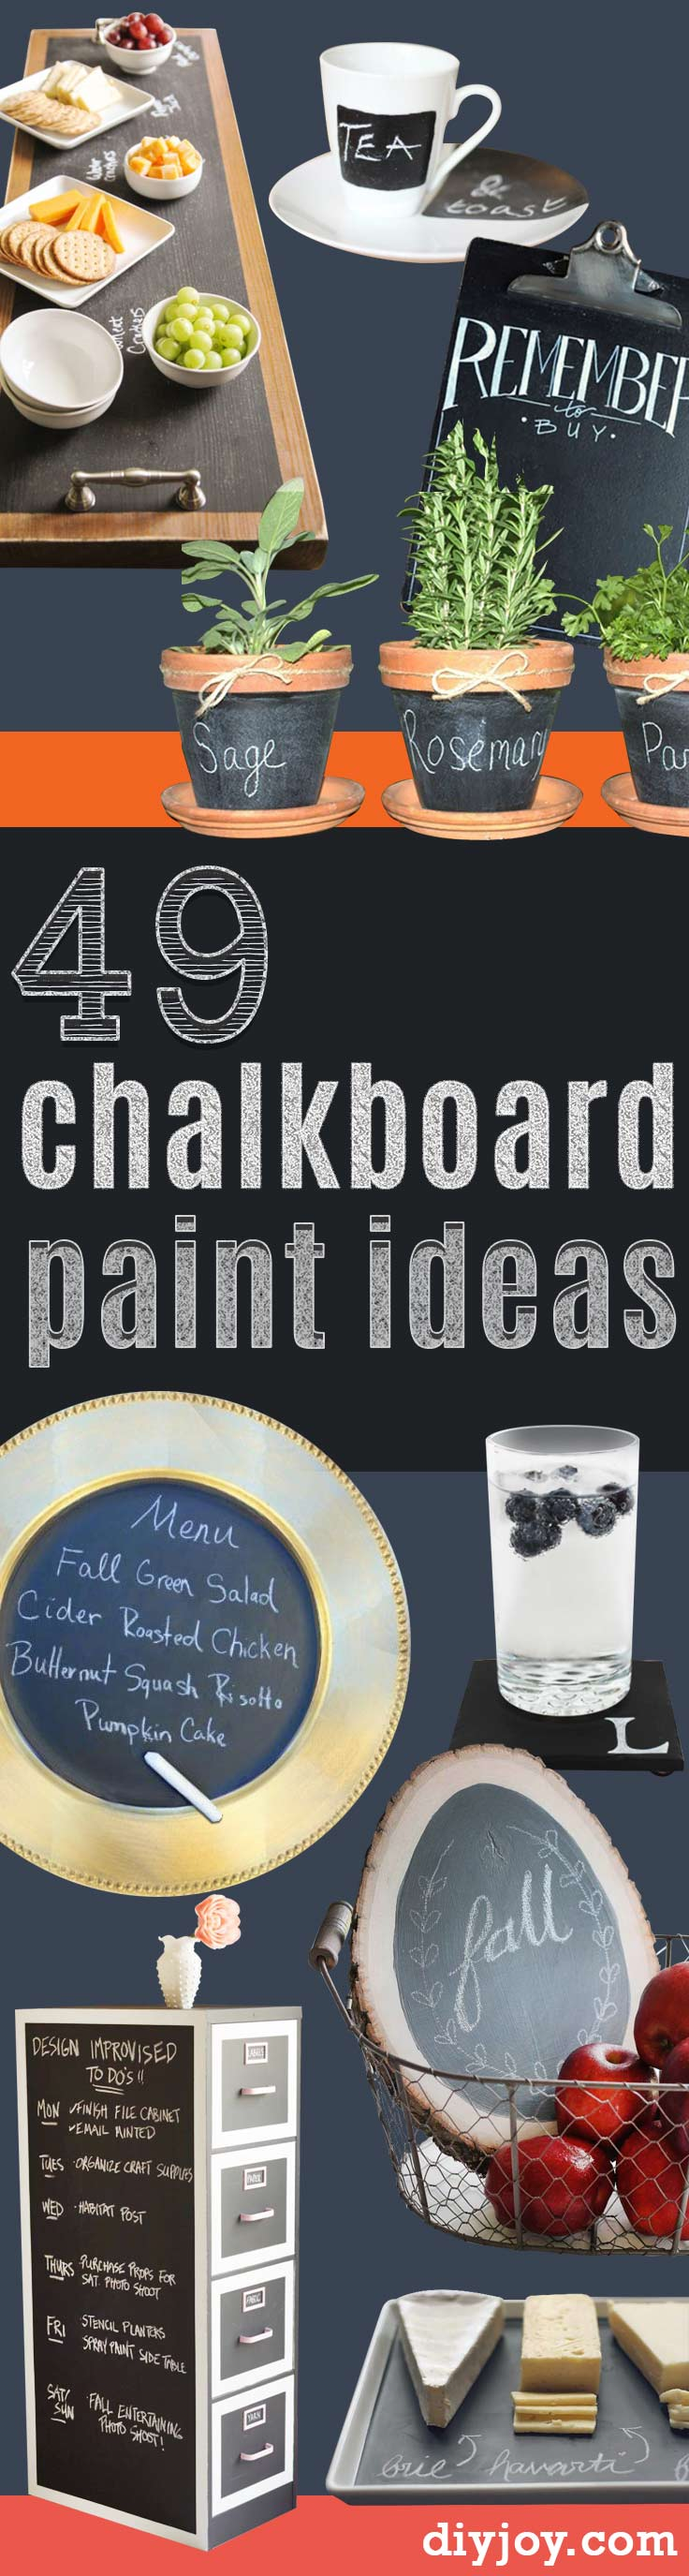 Chalkboard Paint Ideas For Kitchen